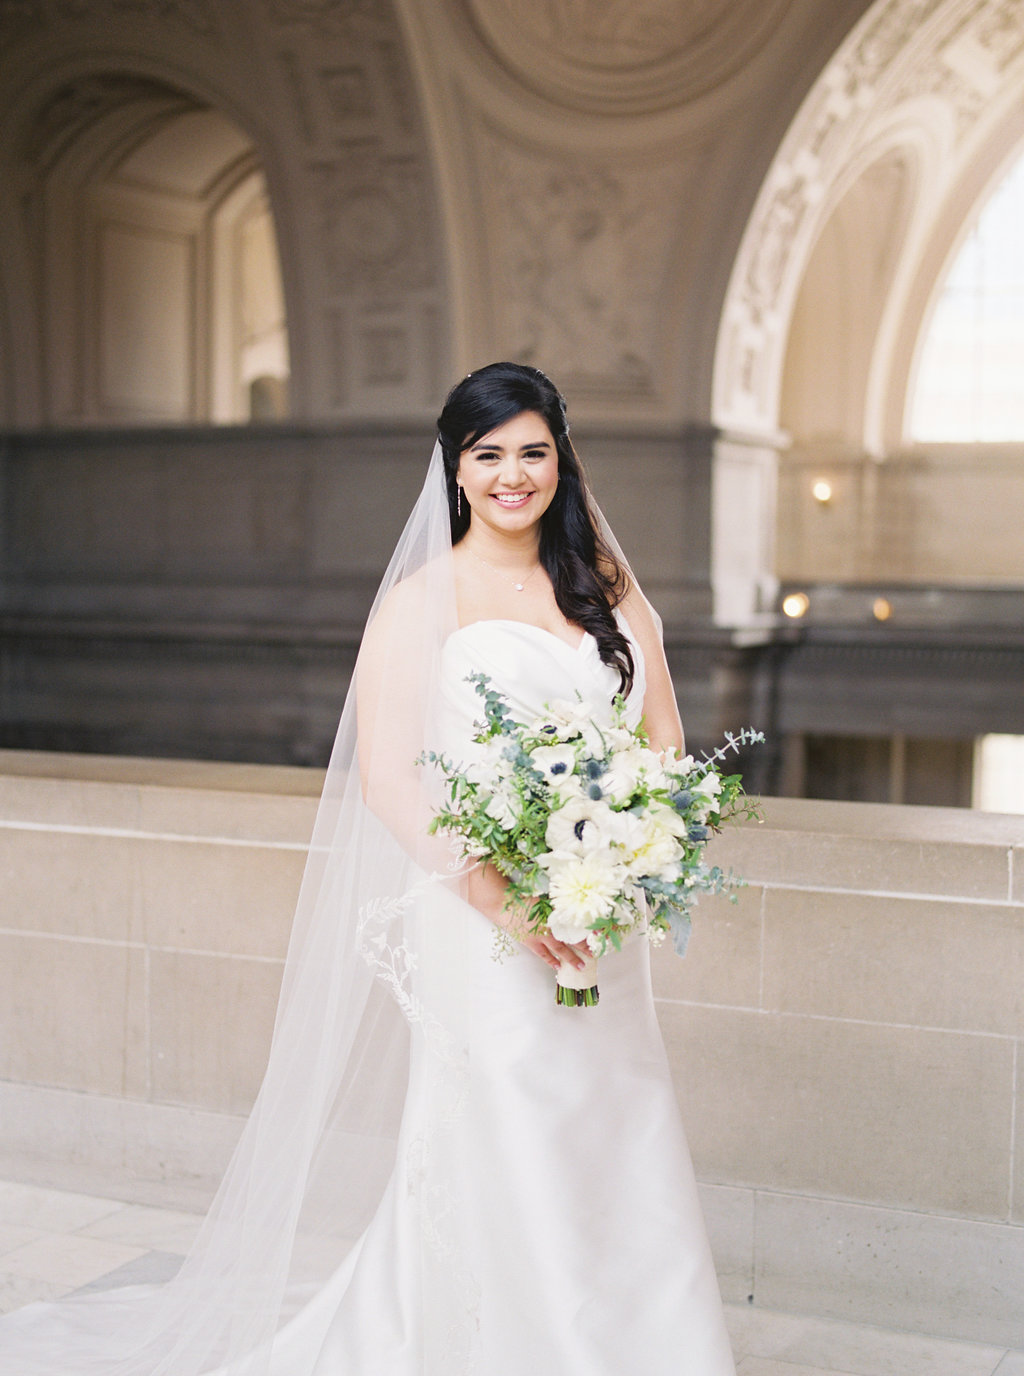 John&Ameera_CityHallWedding-206.jpg